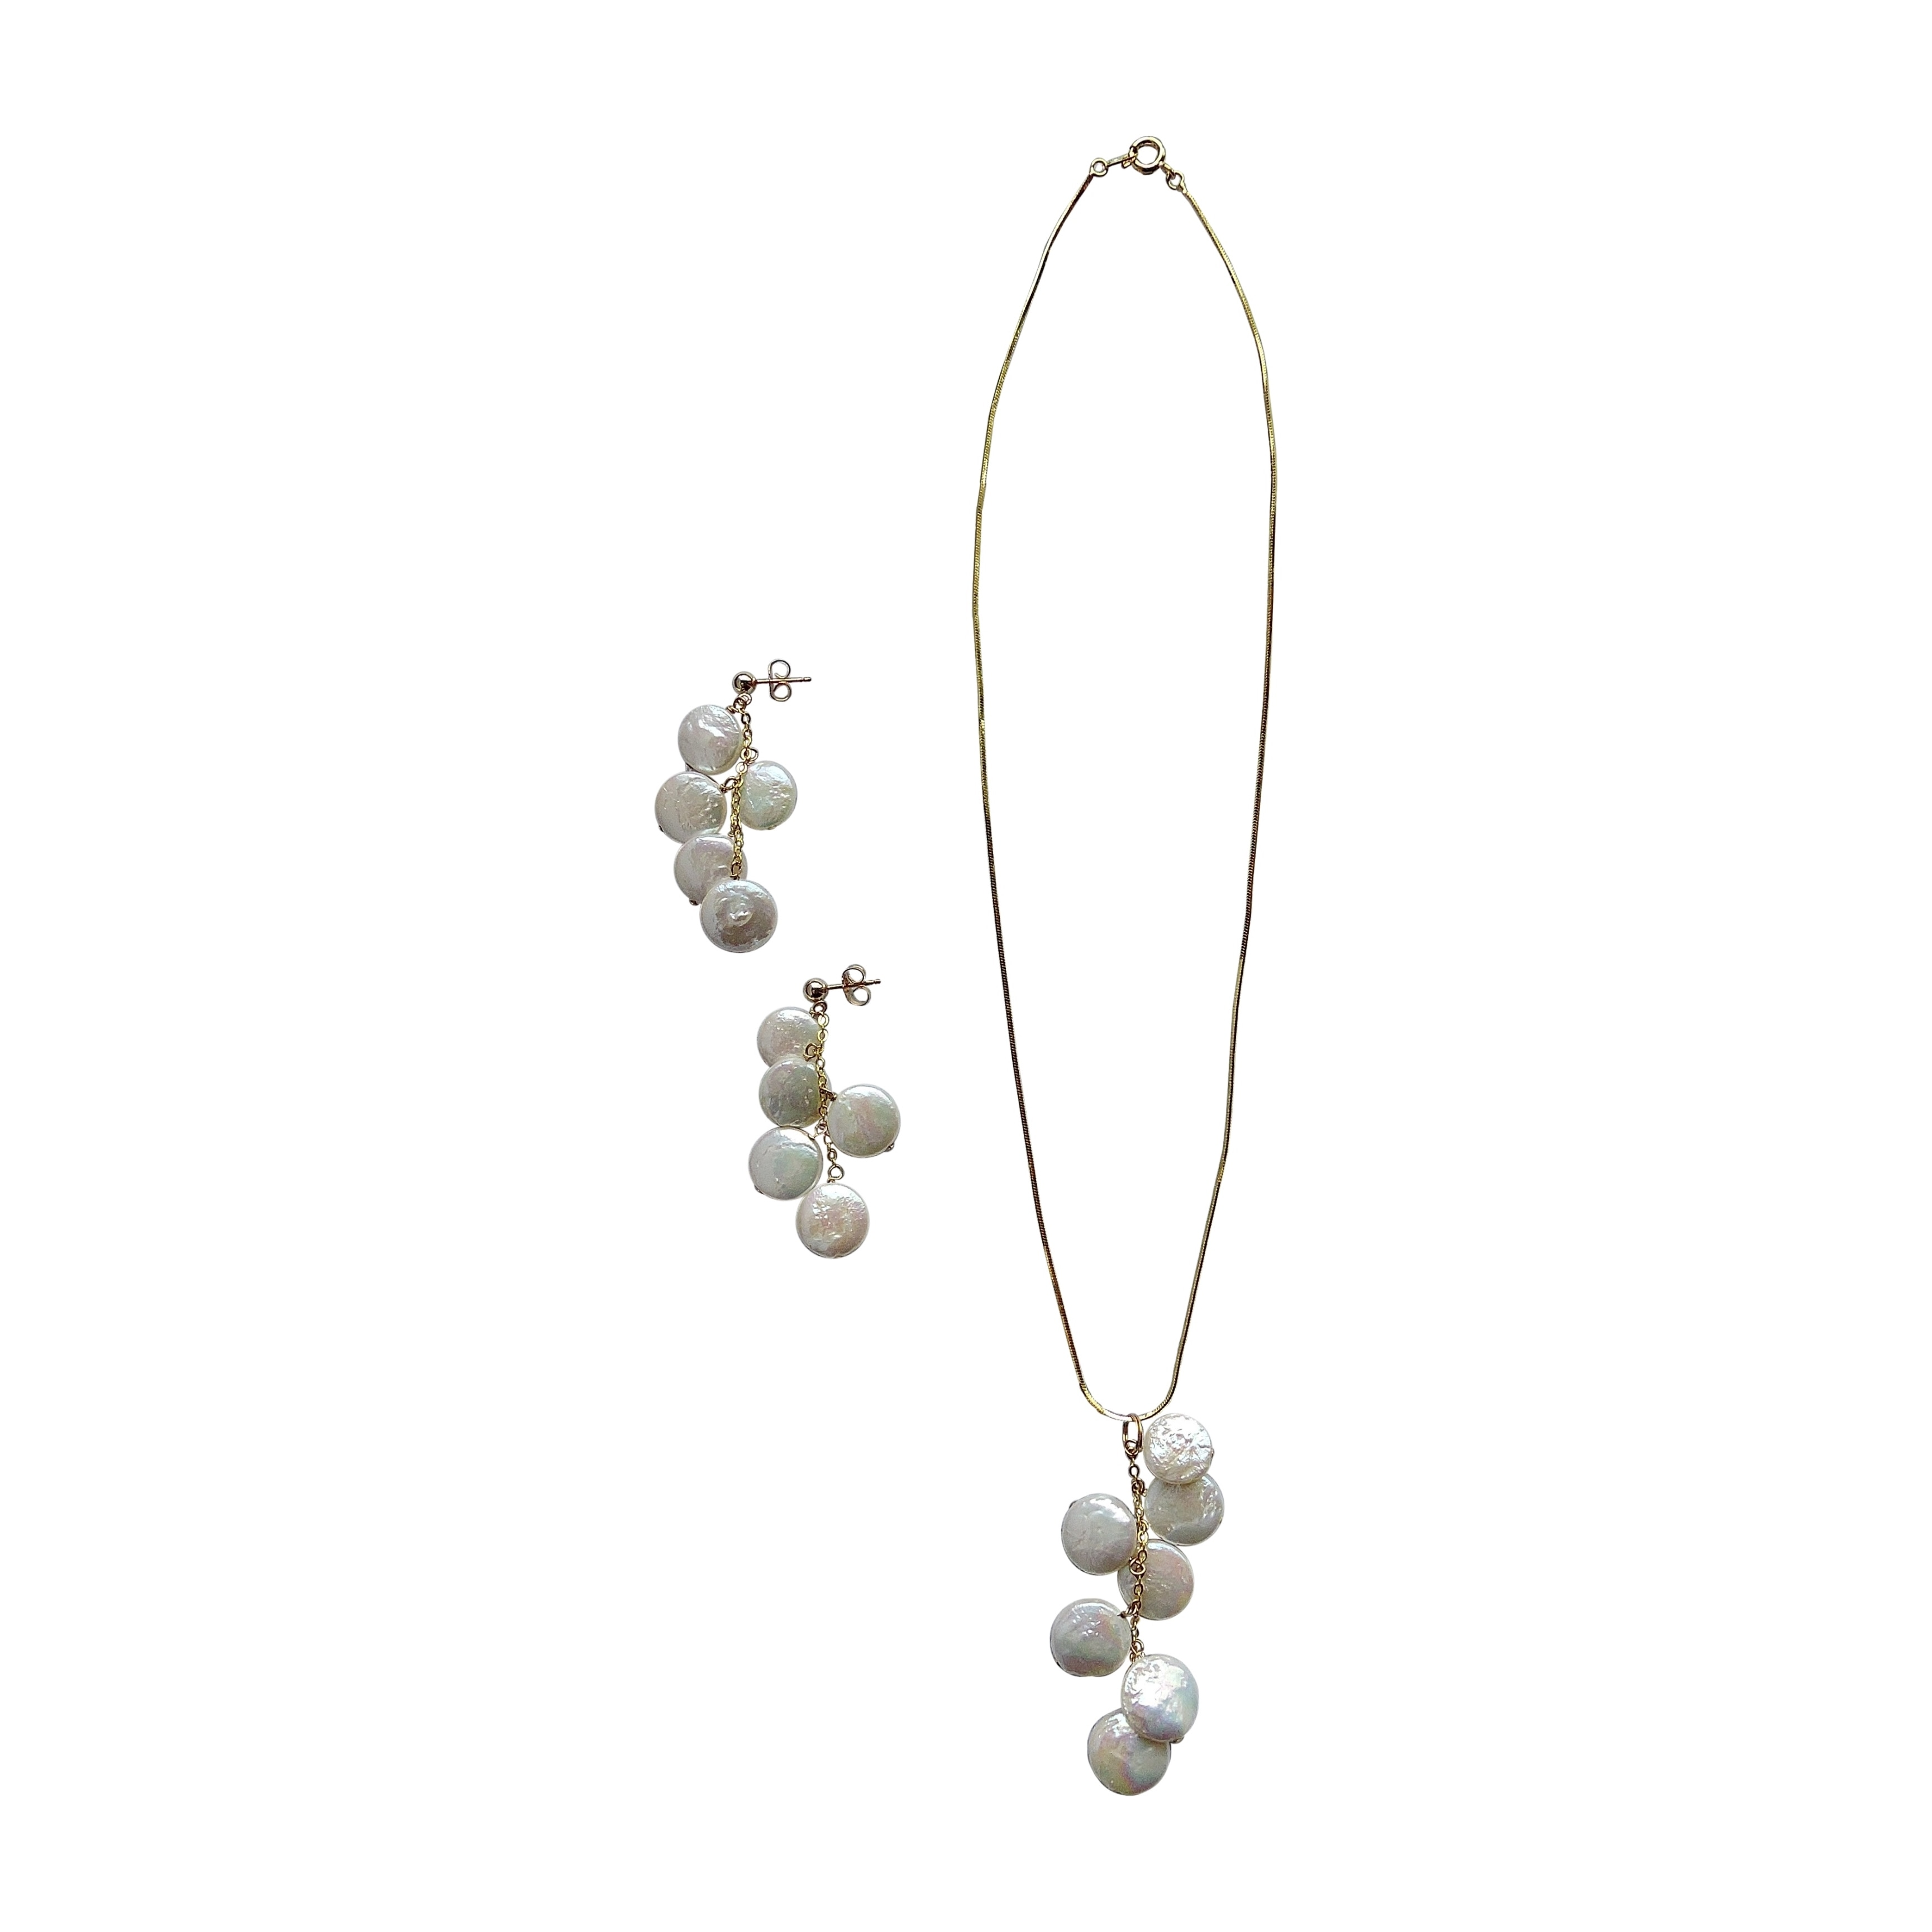 14k Gold Overlay White Coin Pearl Pendant Necklace and Ea...